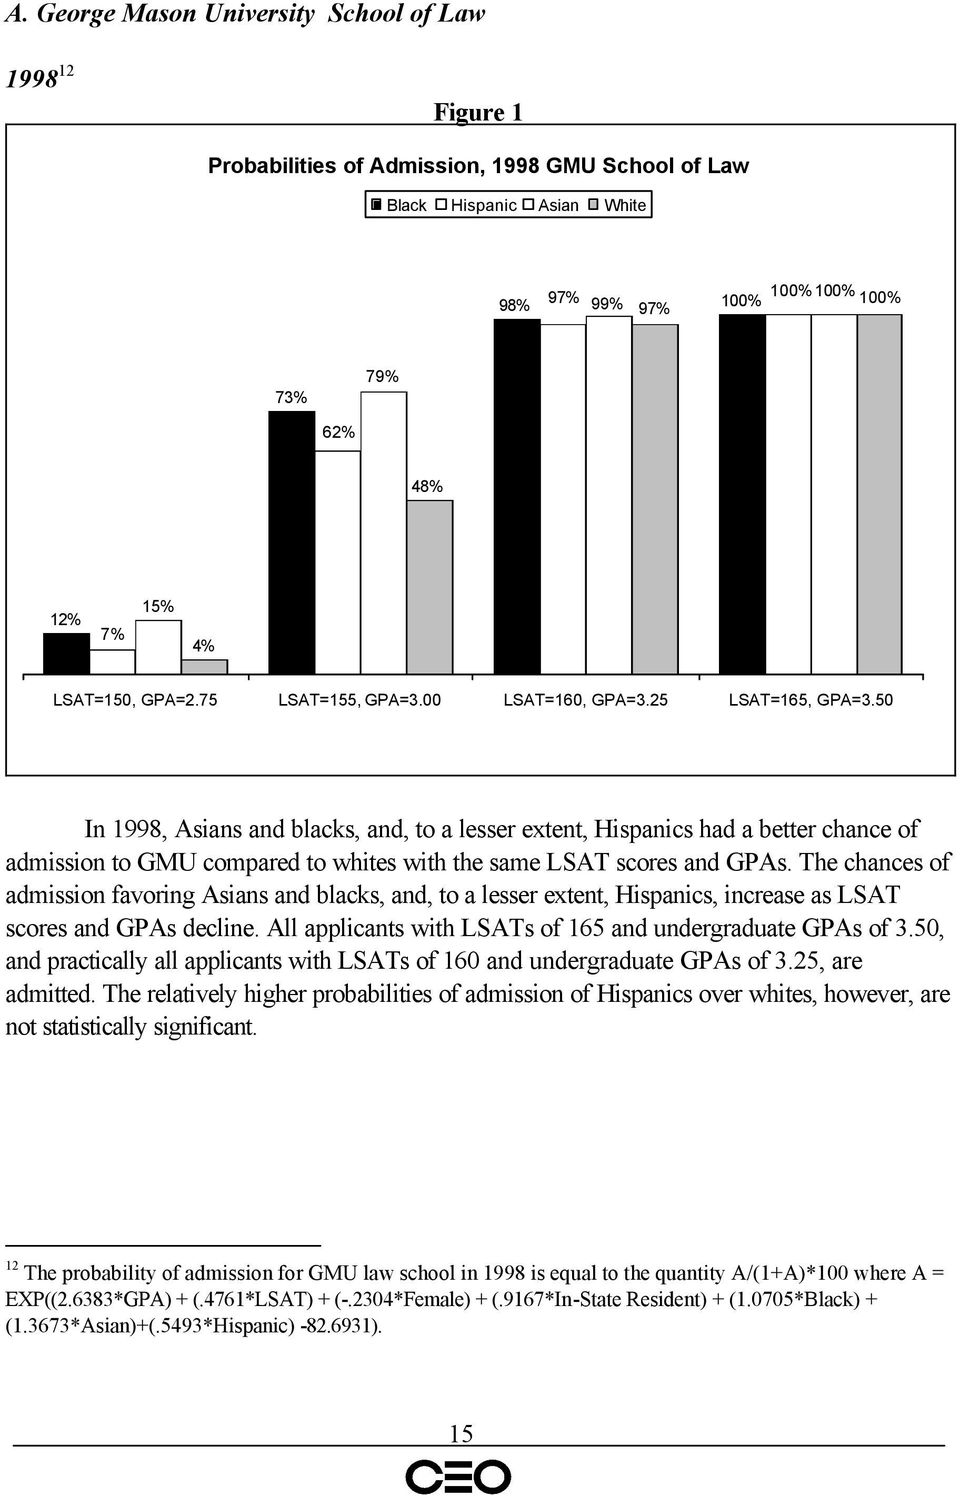 50 In 1998, Asians and blacks, and, to a lesser extent, Hispanics had a better chance of admission to GMU compared to whites with the same LSAT scores and GPAs.